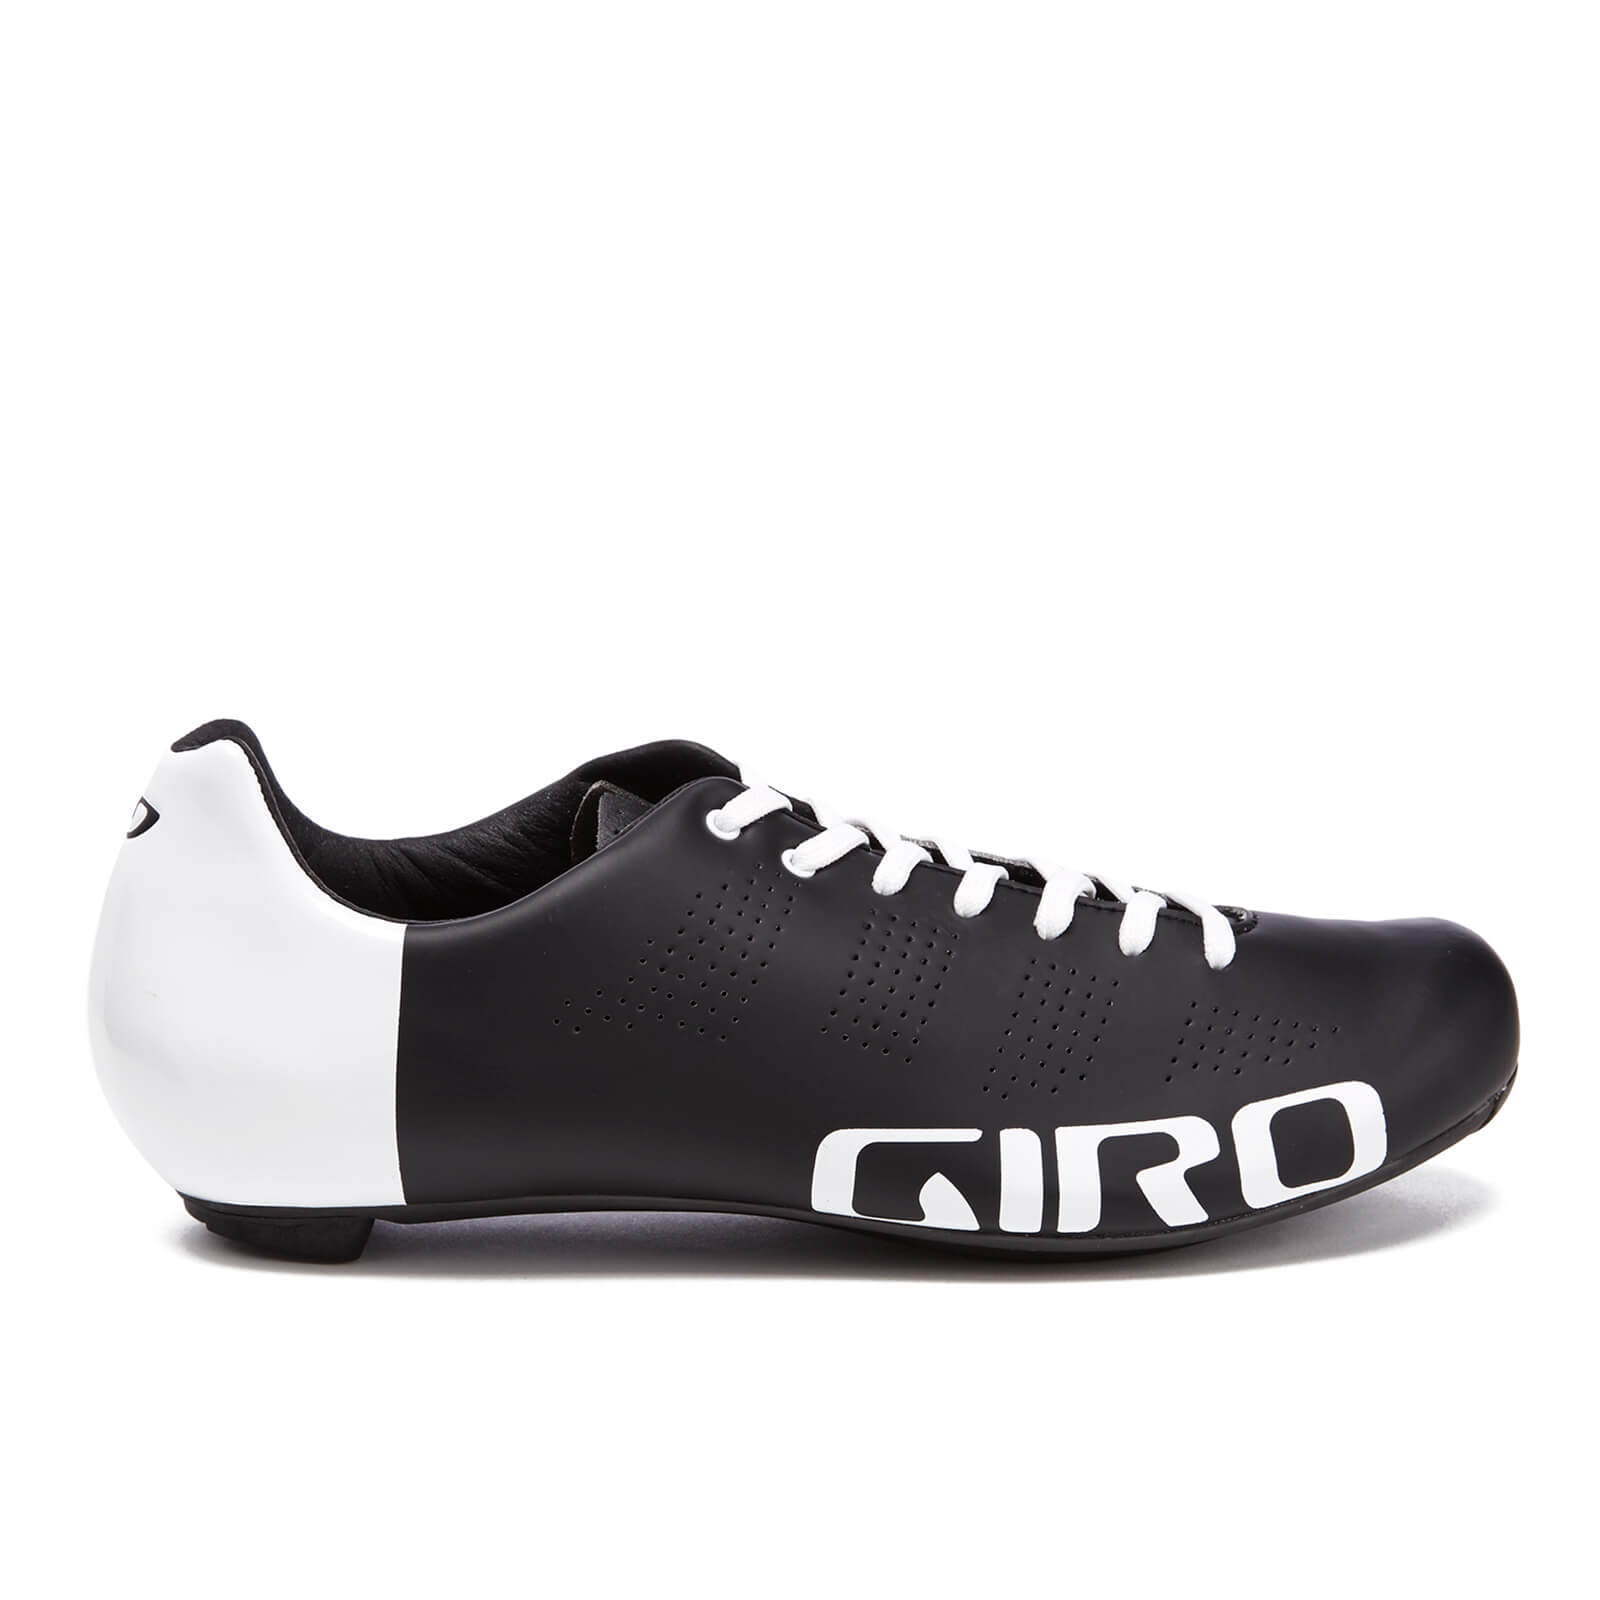 Giro Empire ACC Road Cycling Shoes - Black/White